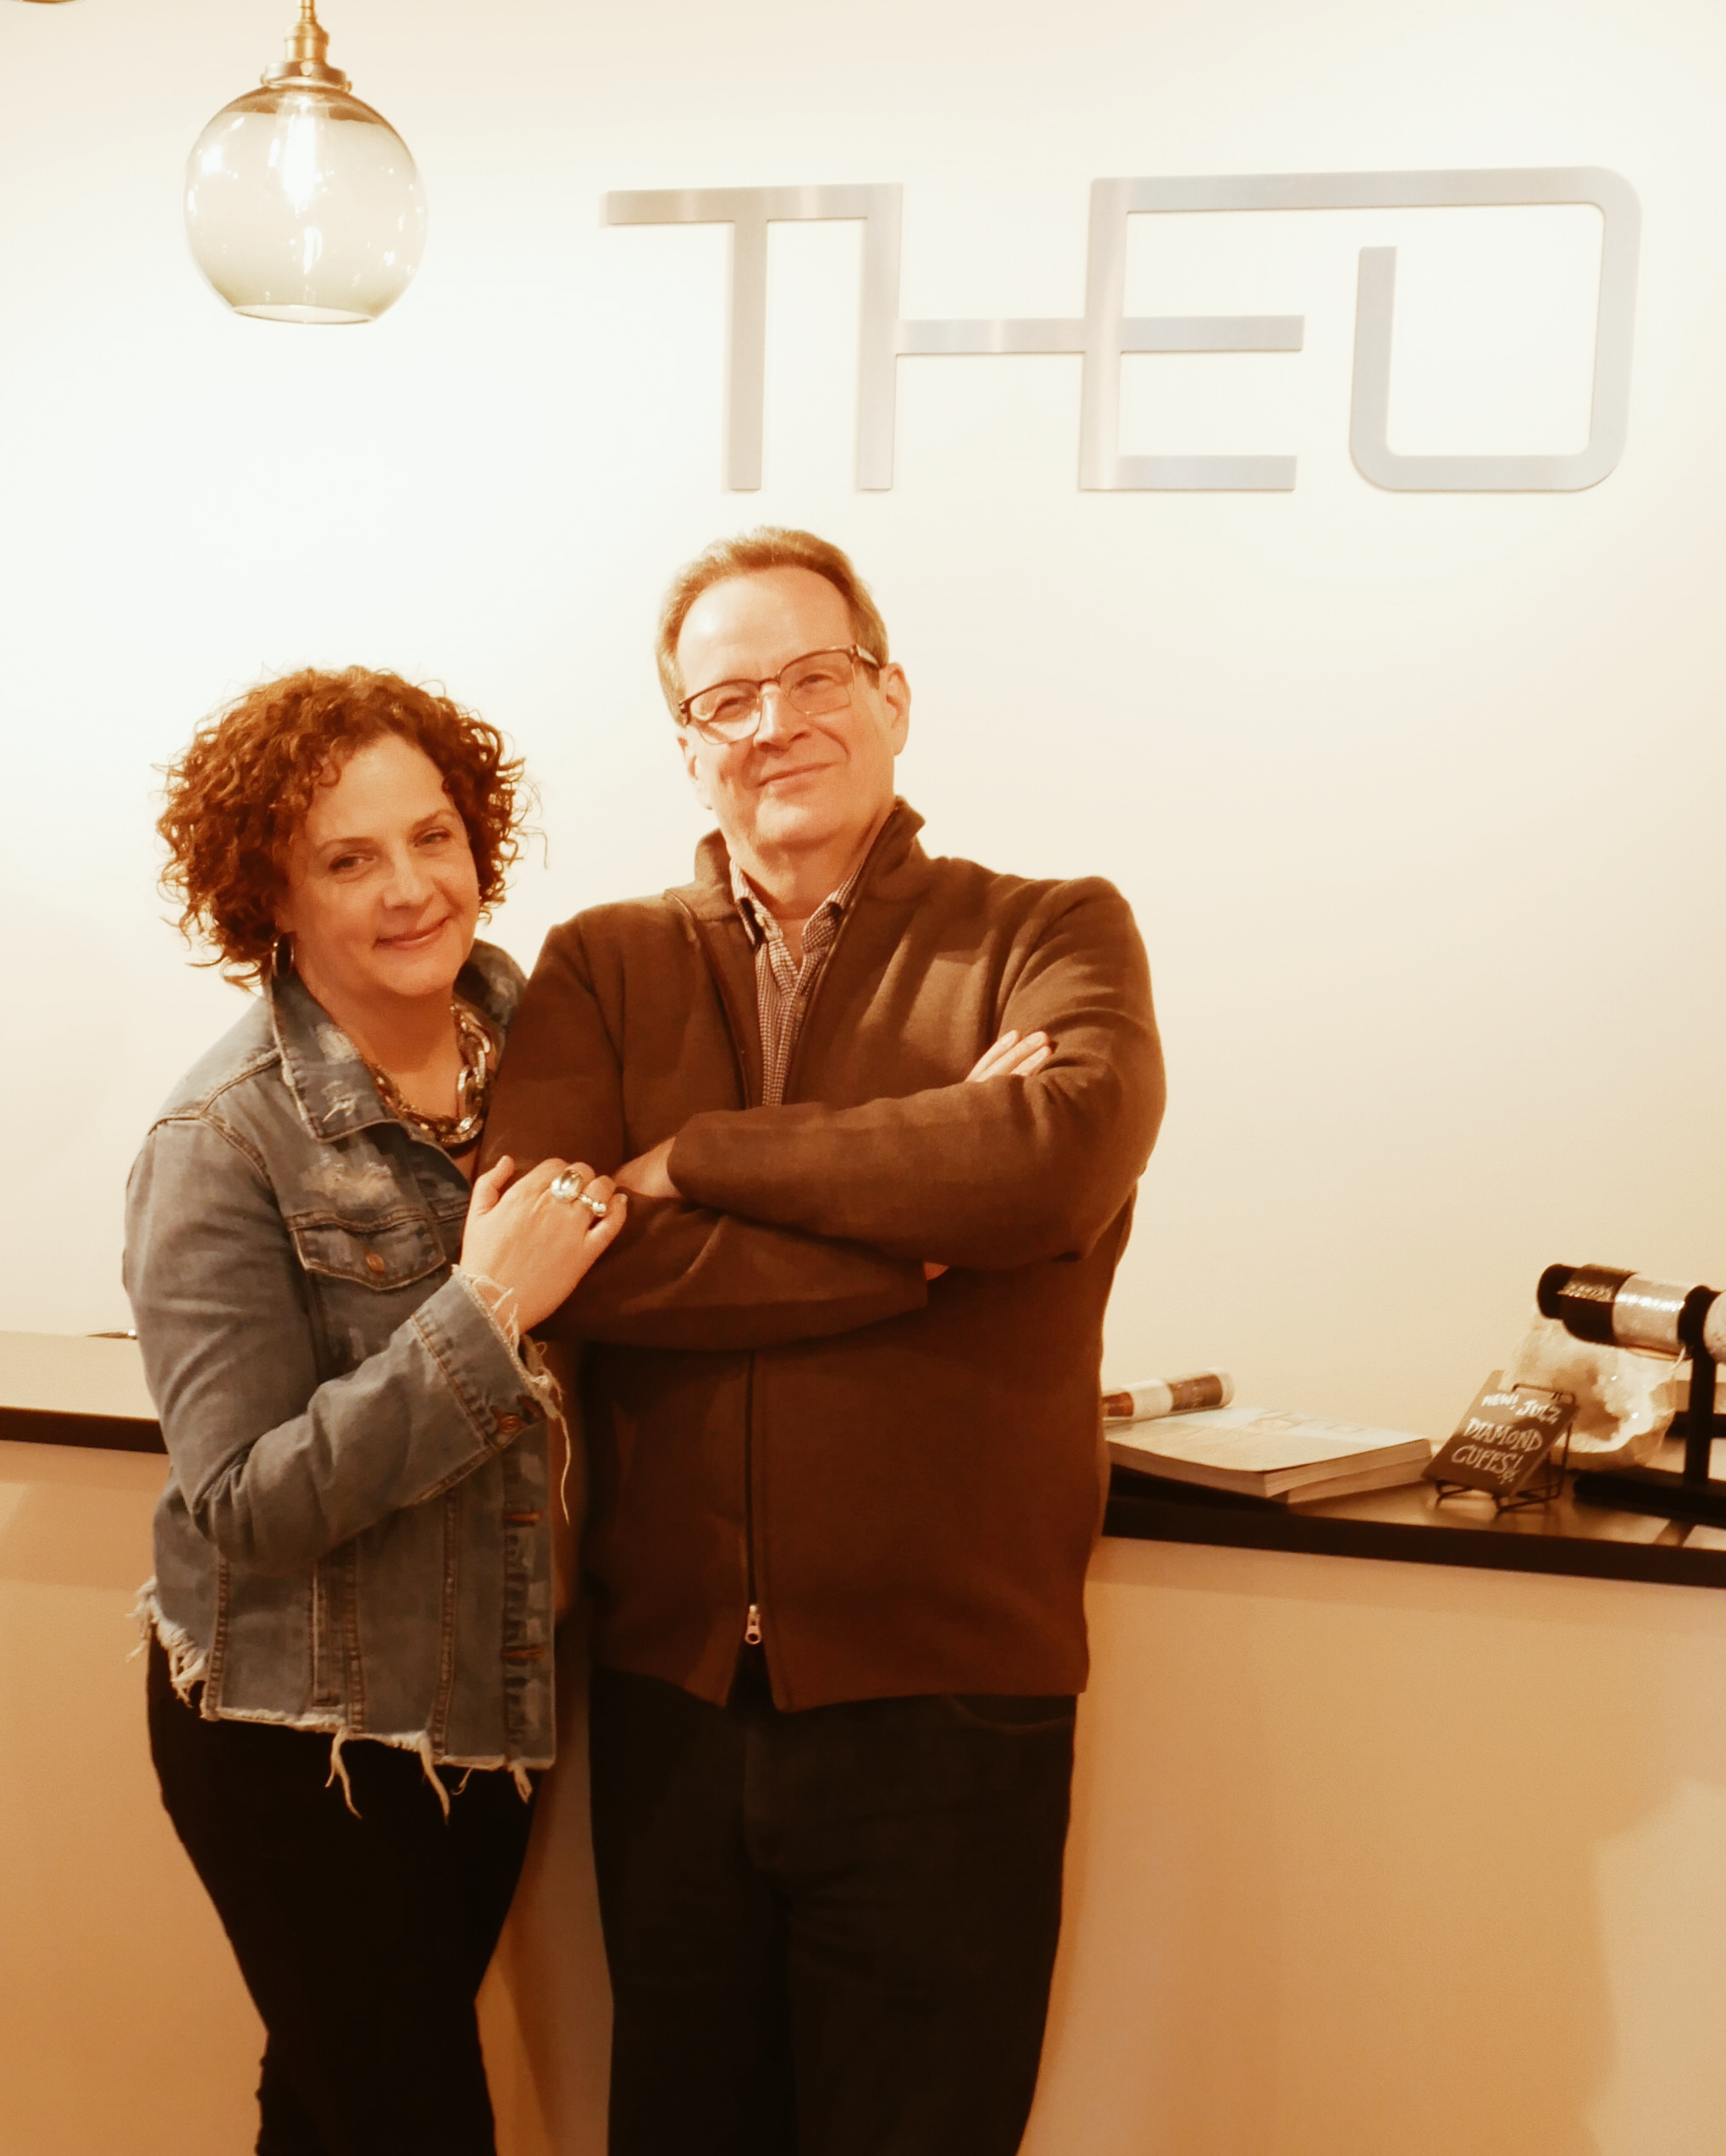 THEO's Creative Director, Tamara Lynas along with Owner & Buyer, Alexander Meder.